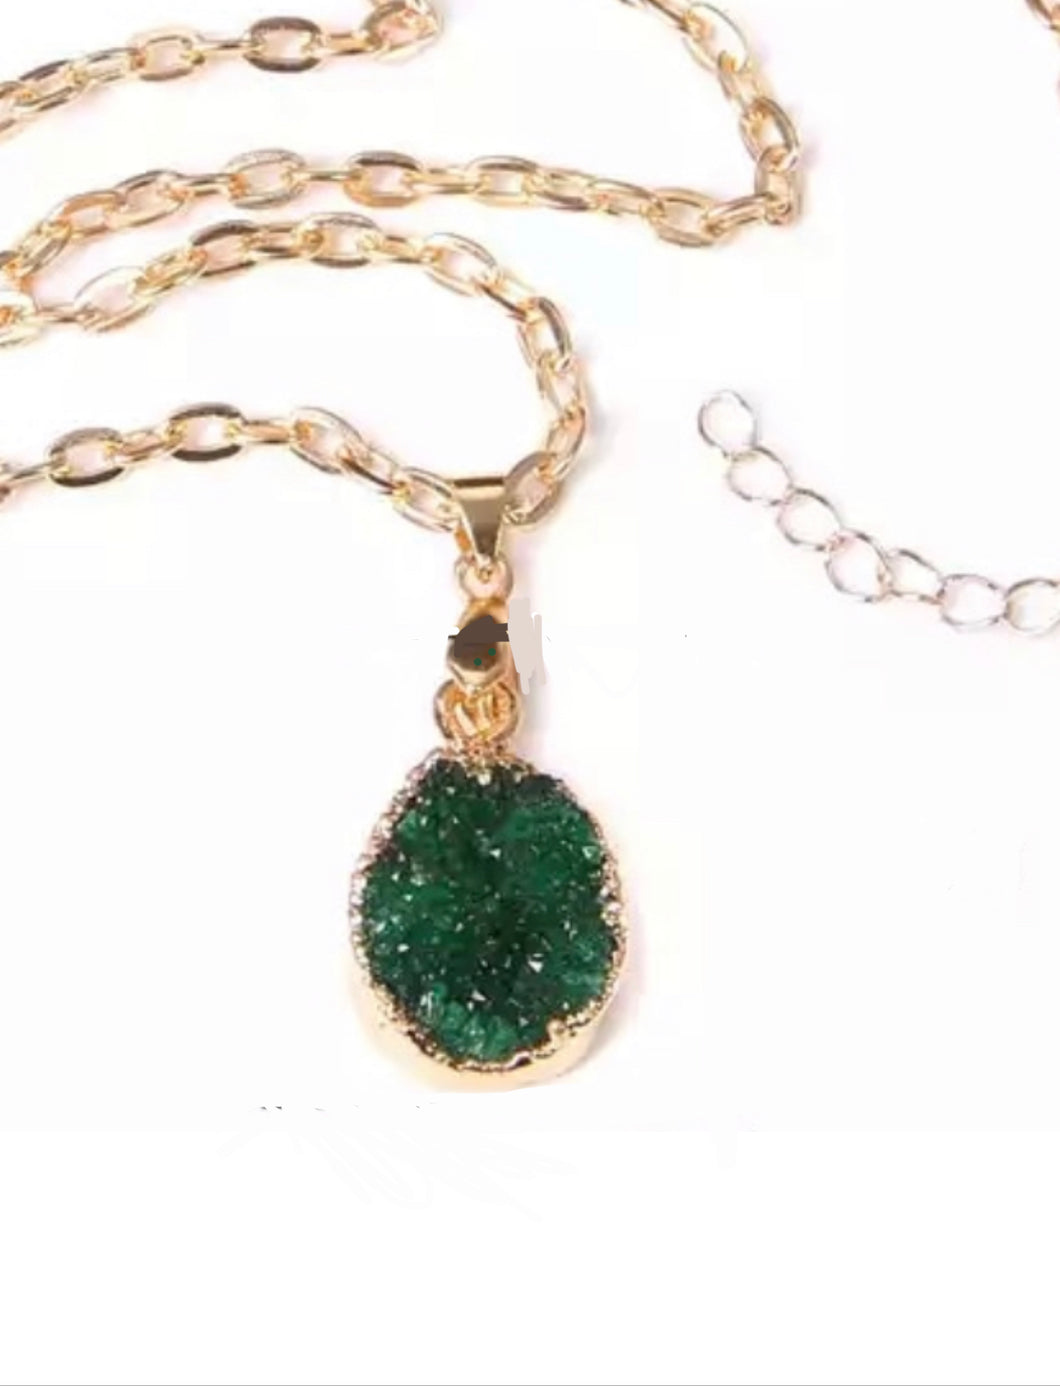 Green Goddess necklace